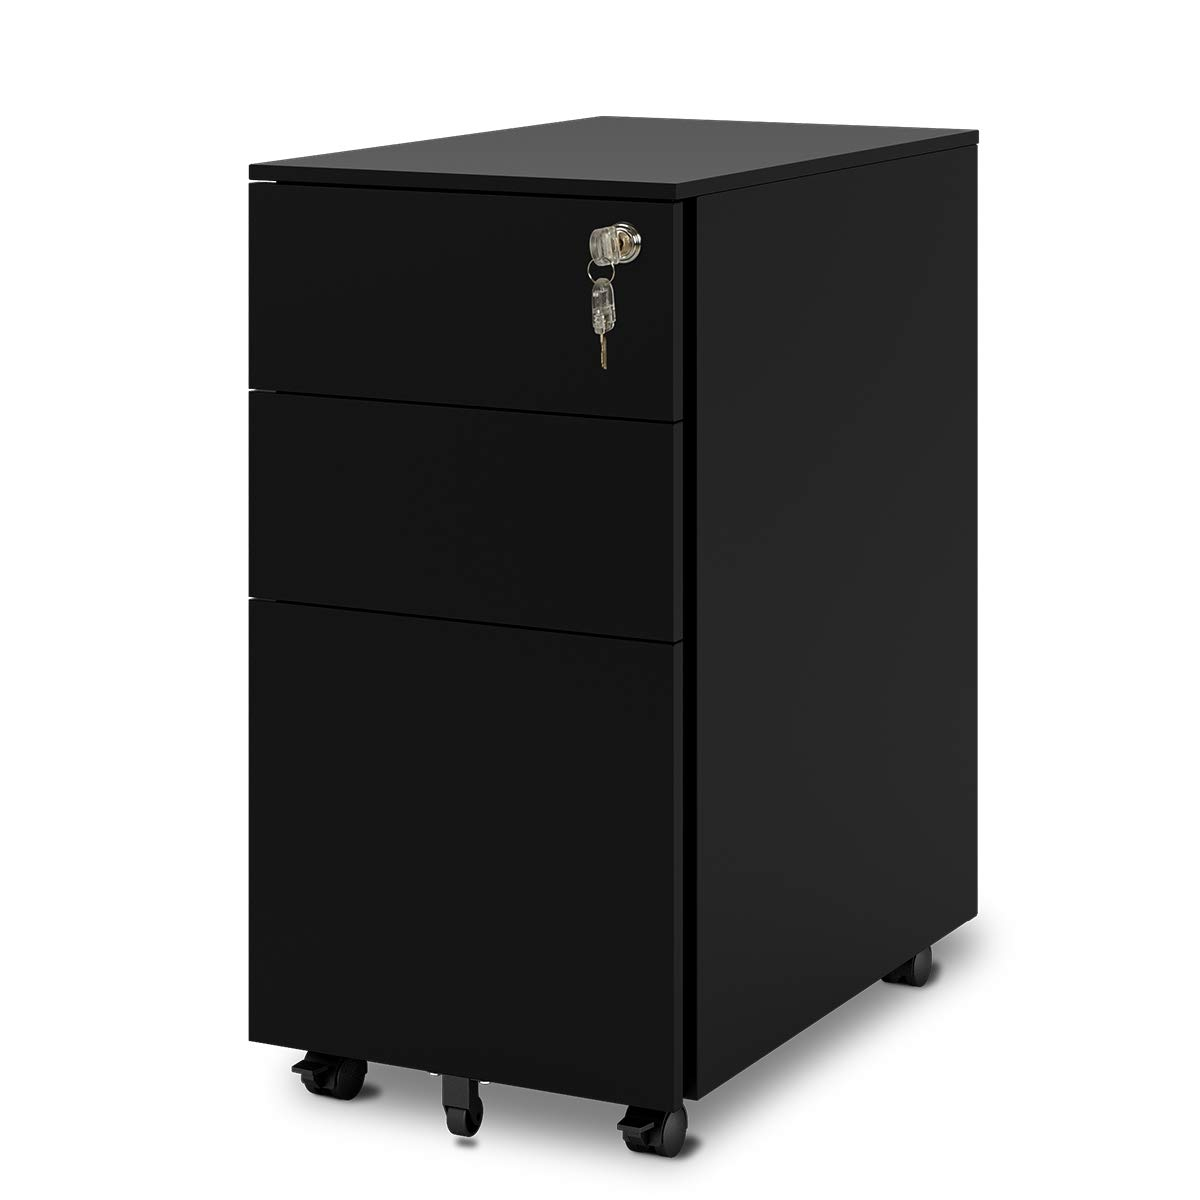 DEVAISE Mobile Filing Cabinet Pedestal under Desk with 3 Drawer for A4 ; All-Steel, Lockable, 39cm W x 48cm D x 60cm H, Black